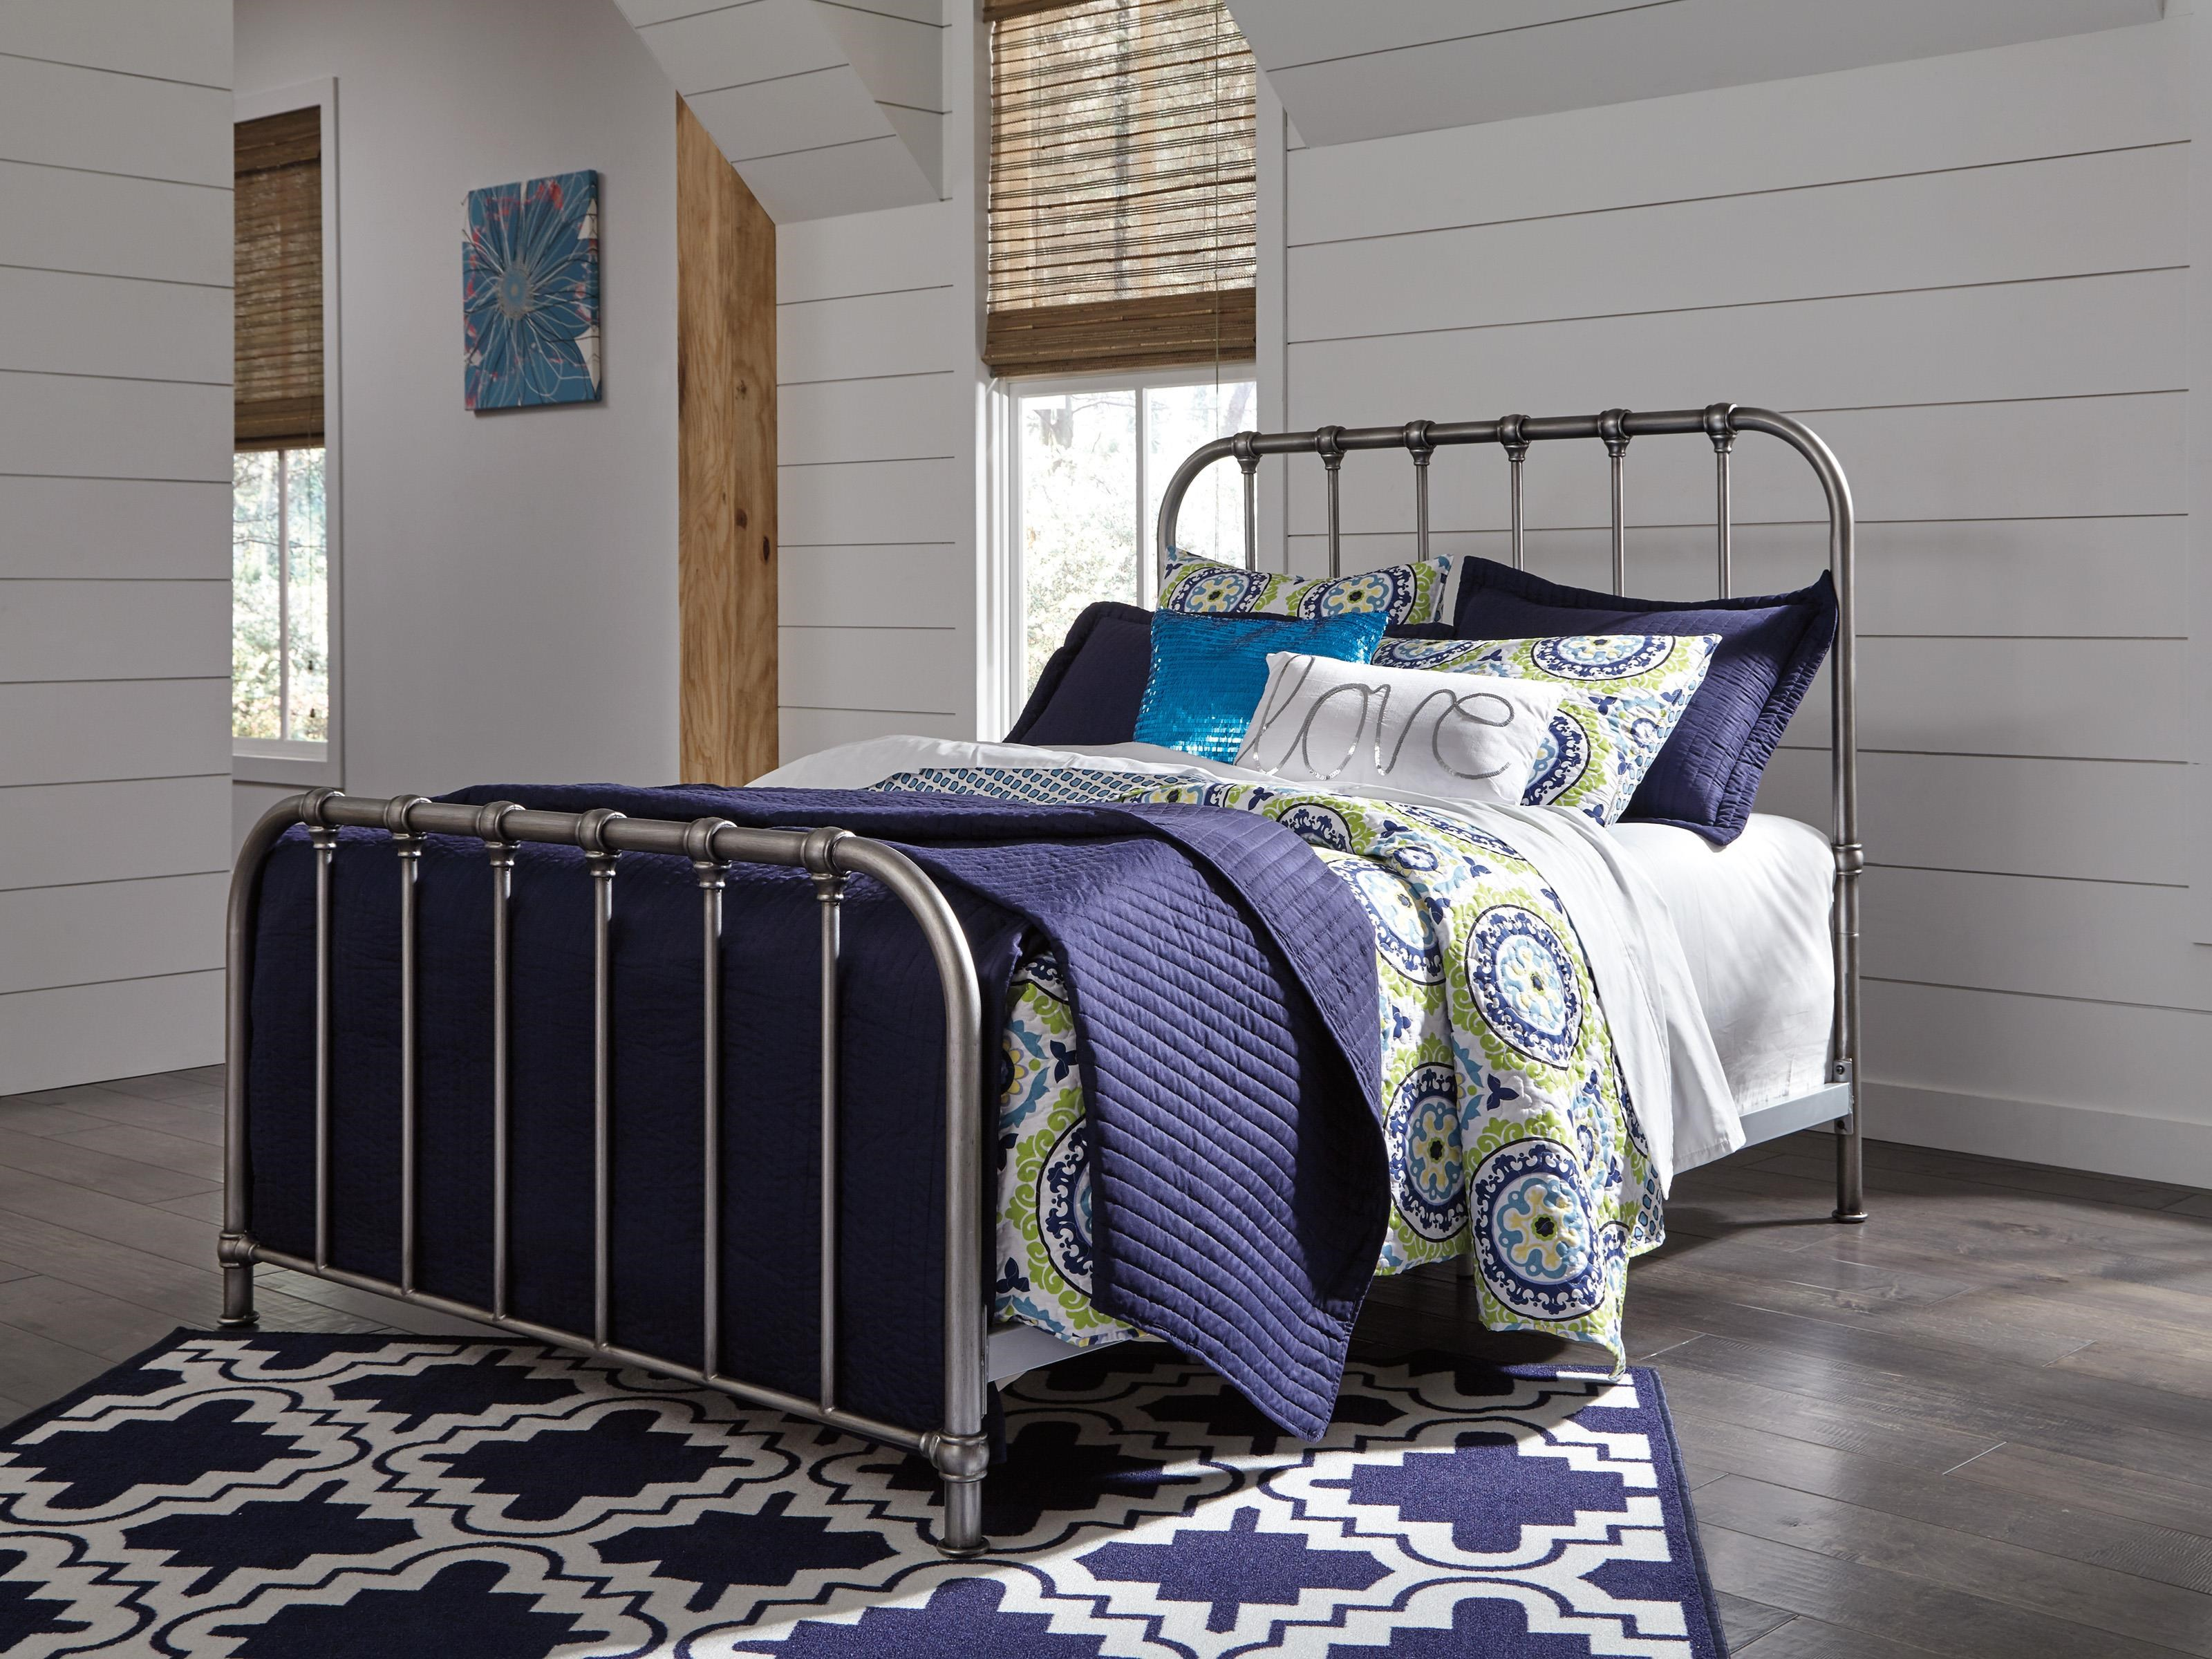 Nashbury Nashbury Queen Metal Bed by Ashley at Morris Home